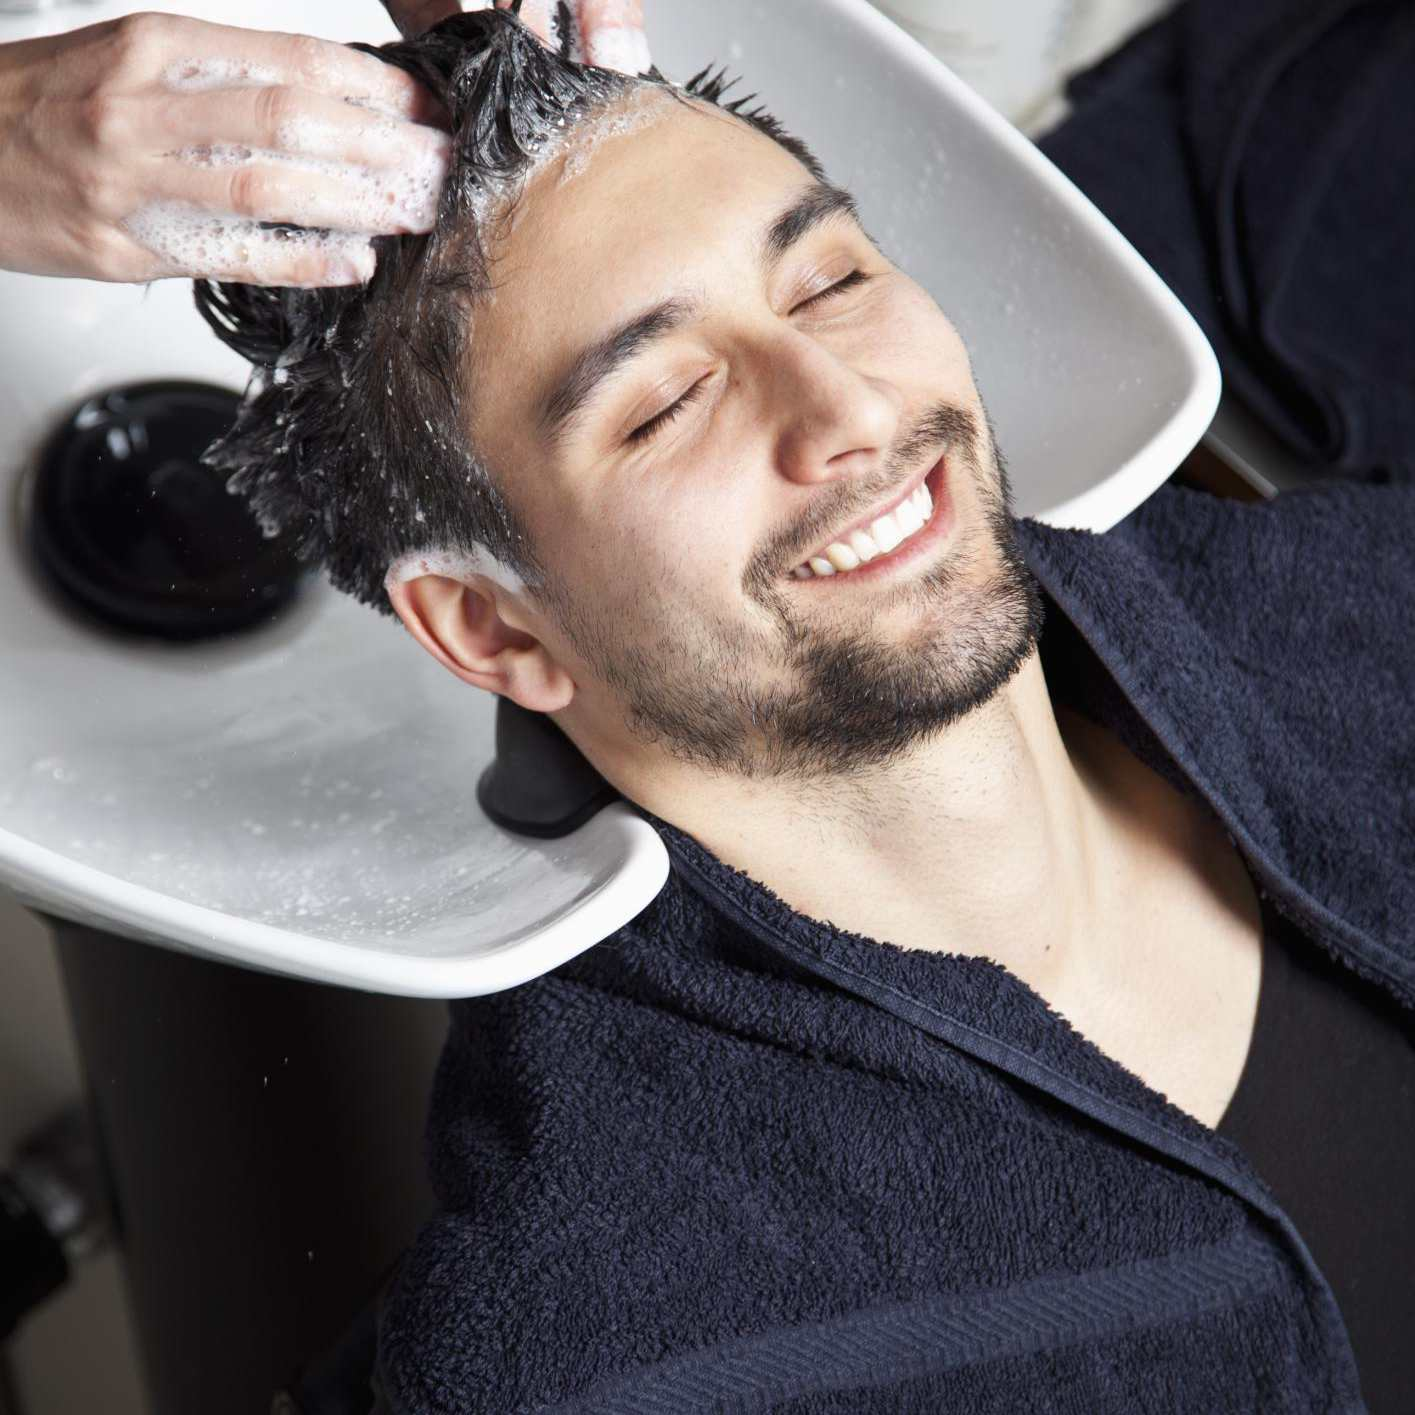 A man having his hair washed at a hair salon